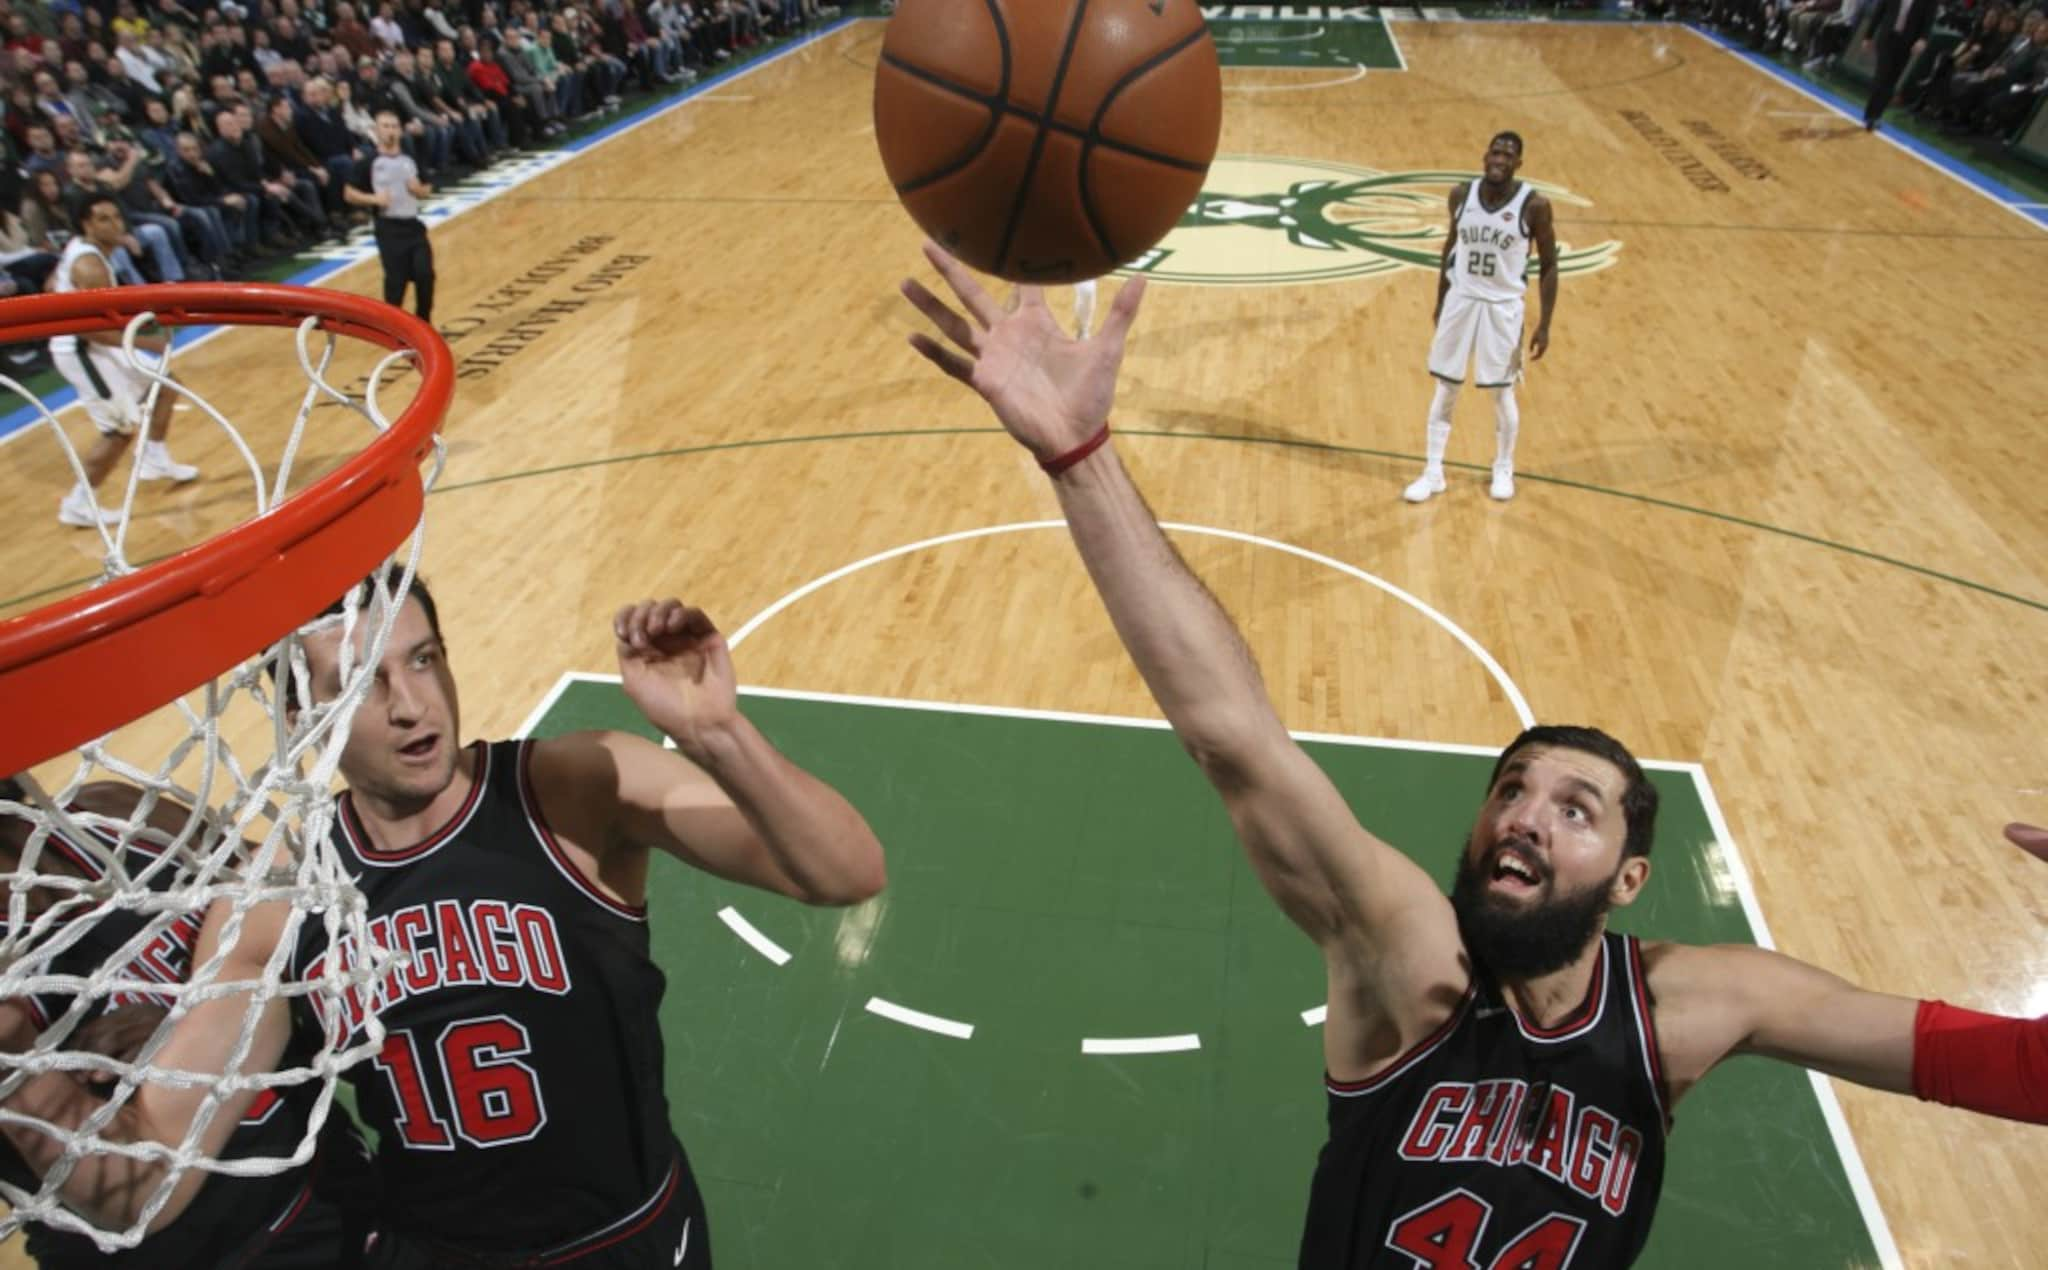 Mirotic coming to the rim, as the Bulls beat the Bucks in Milwaukee